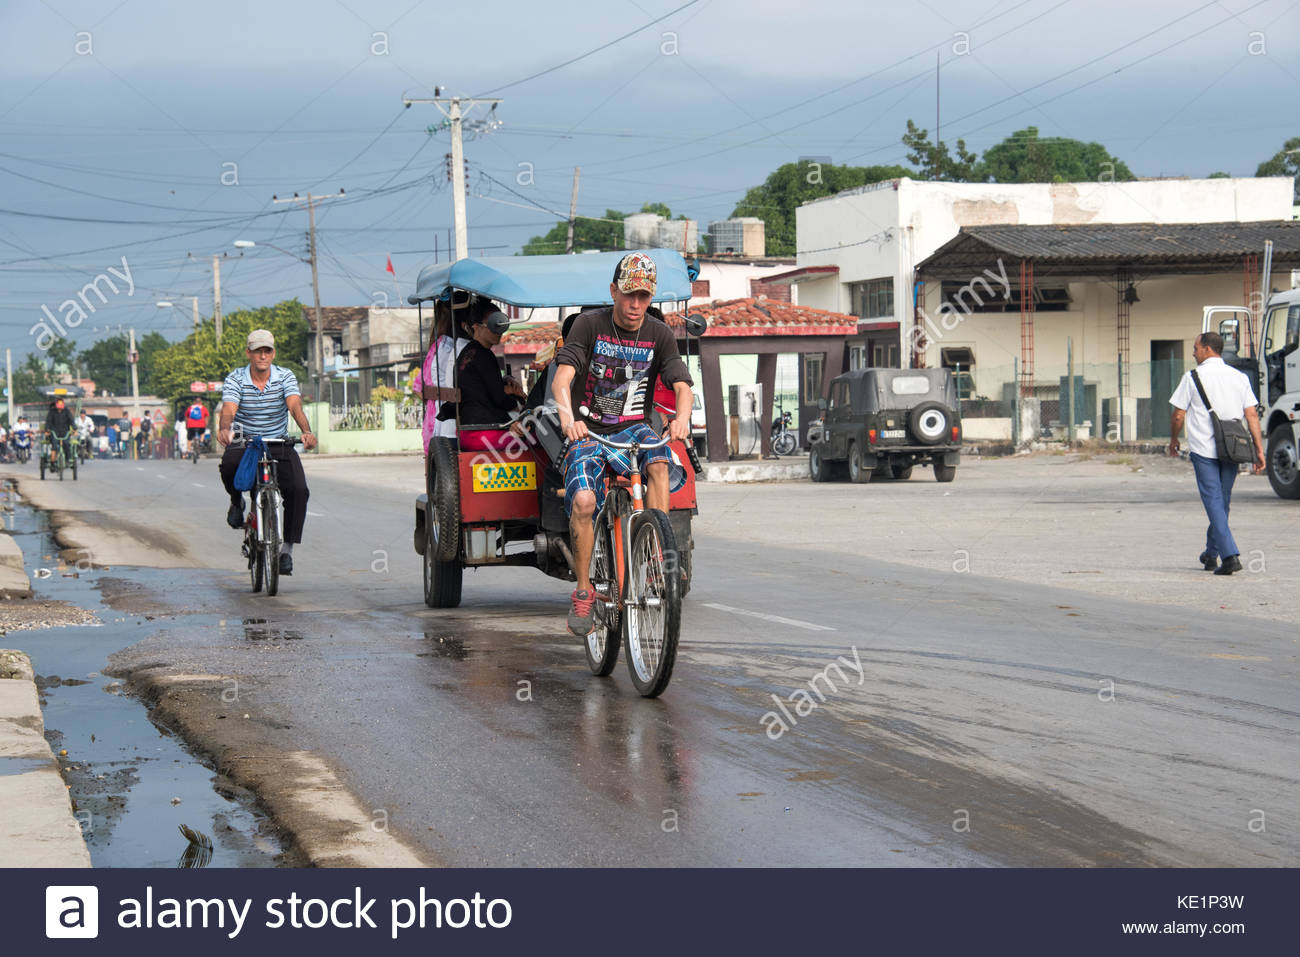 Urban transportation and unhygienic street. 'Motoneta' used for commuting and bicycle passing by the road - Stock Image